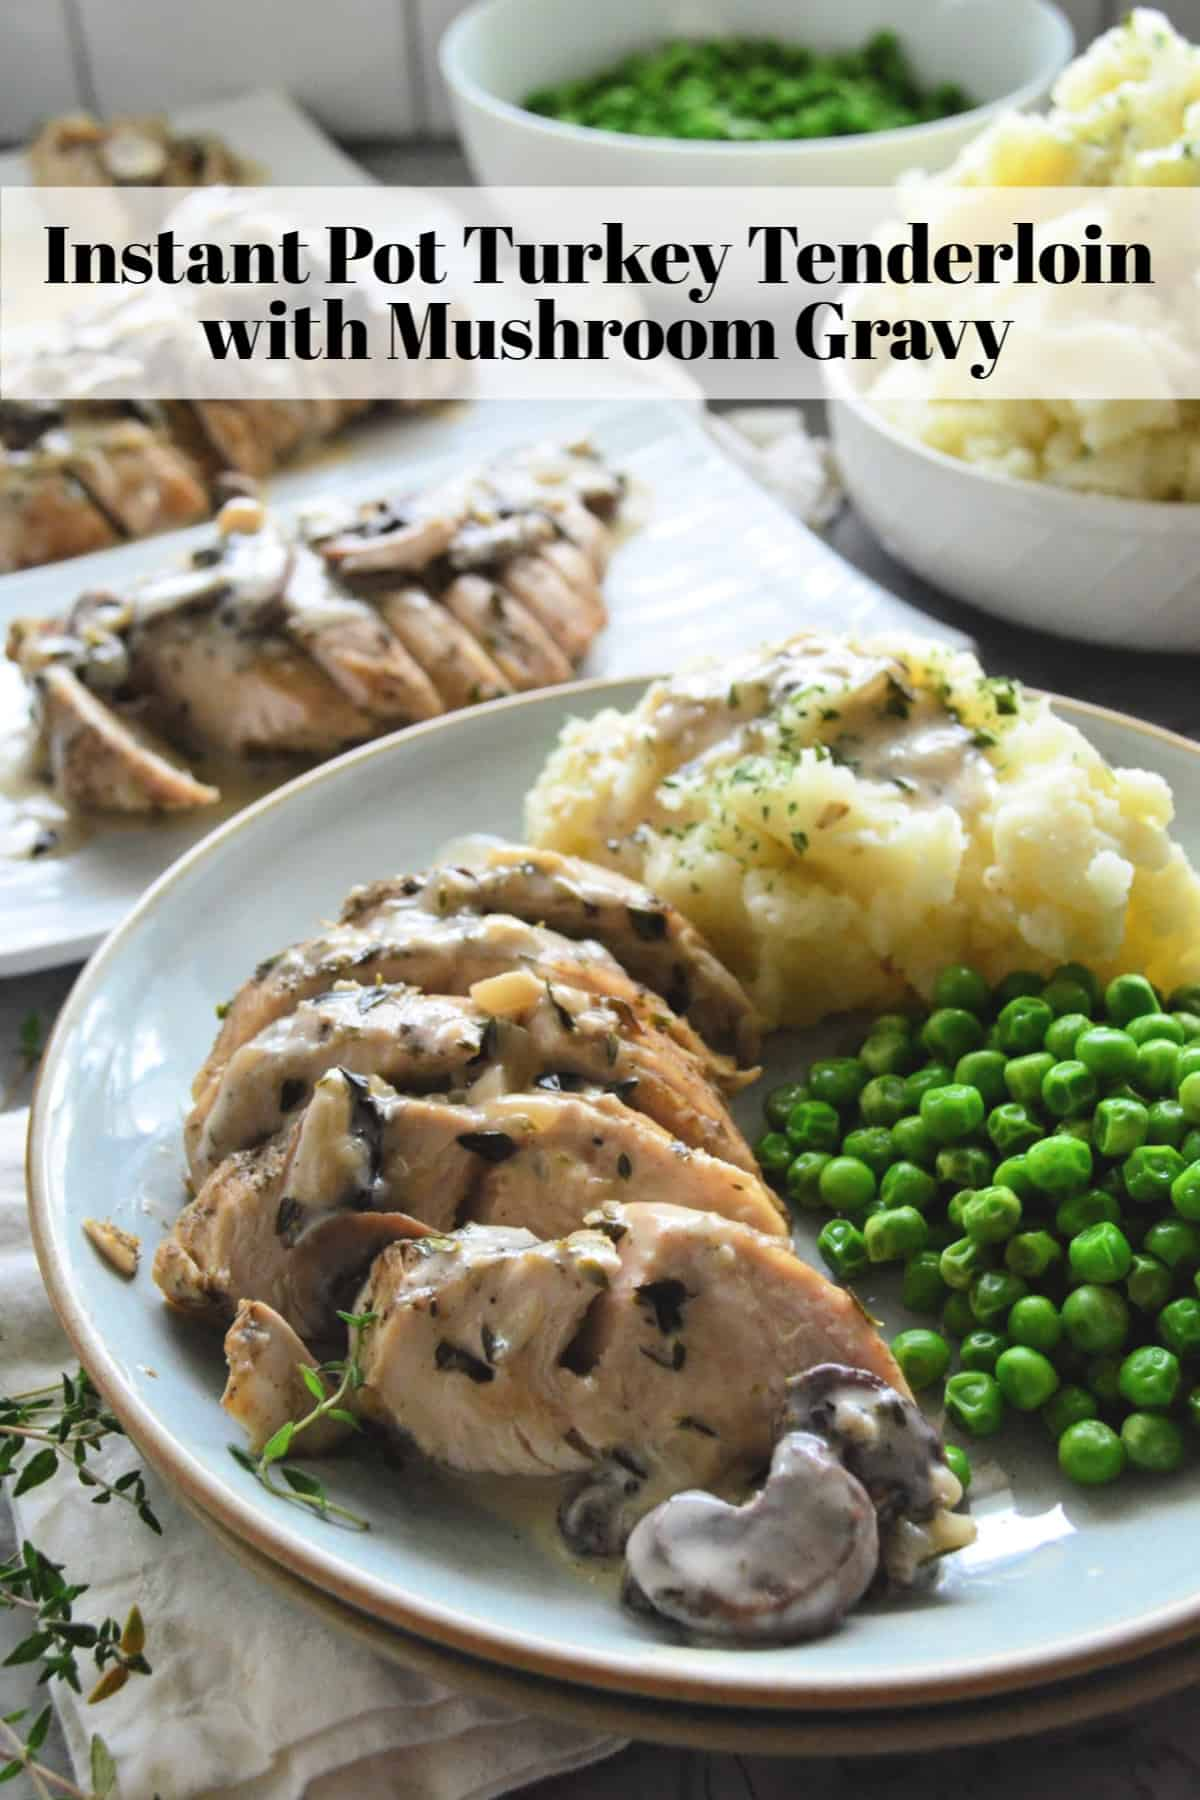 Sliced Turkey Tenderloin plated with mashed potatoes and peas drizzled with gravy with title text.